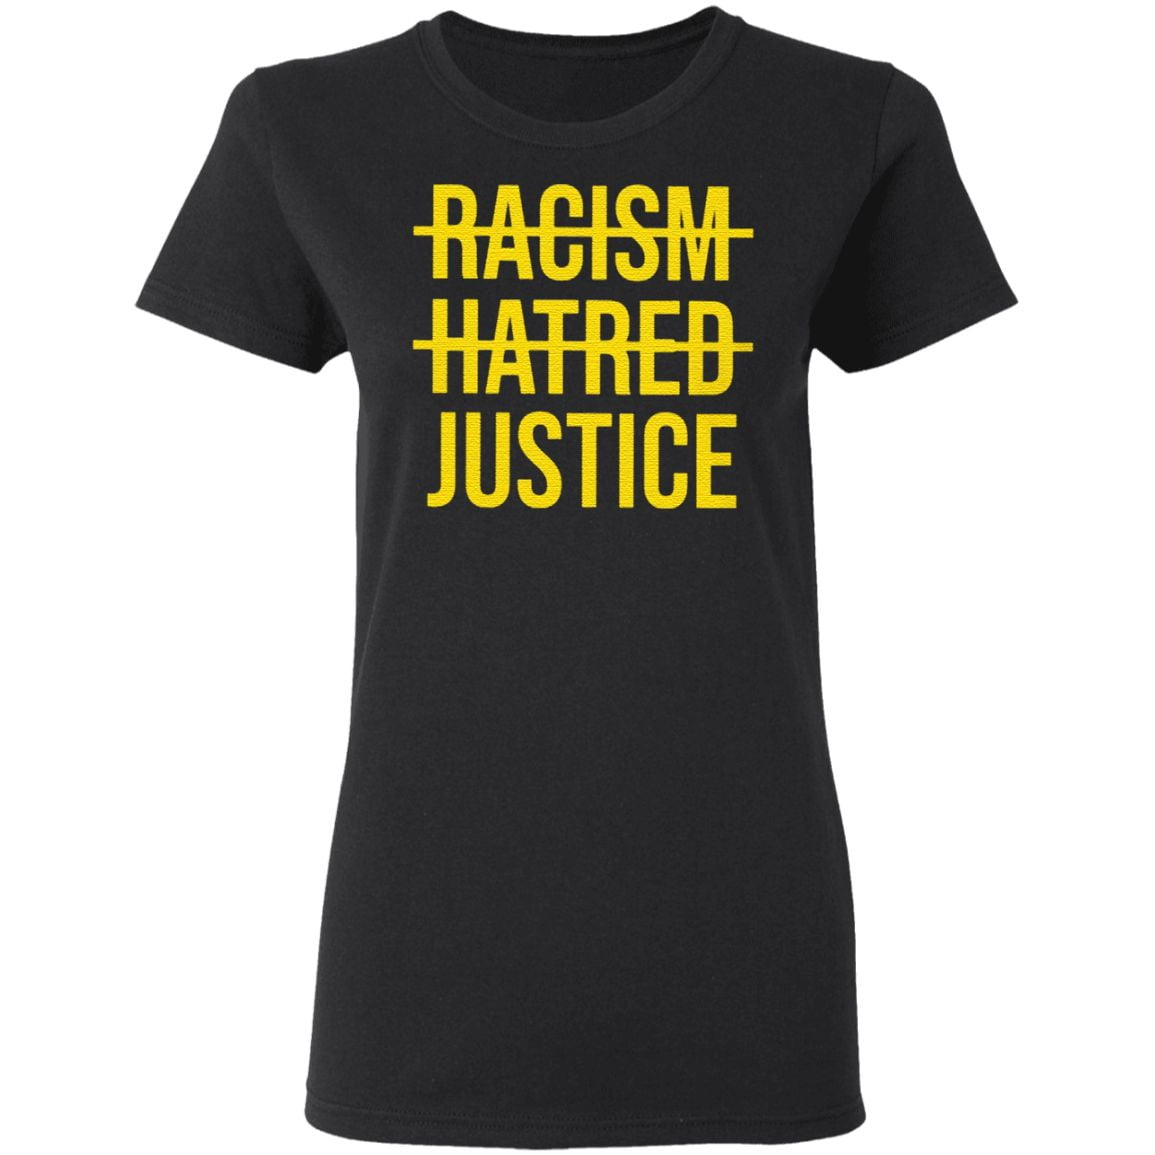 Racism Hatred Justice T Shirt